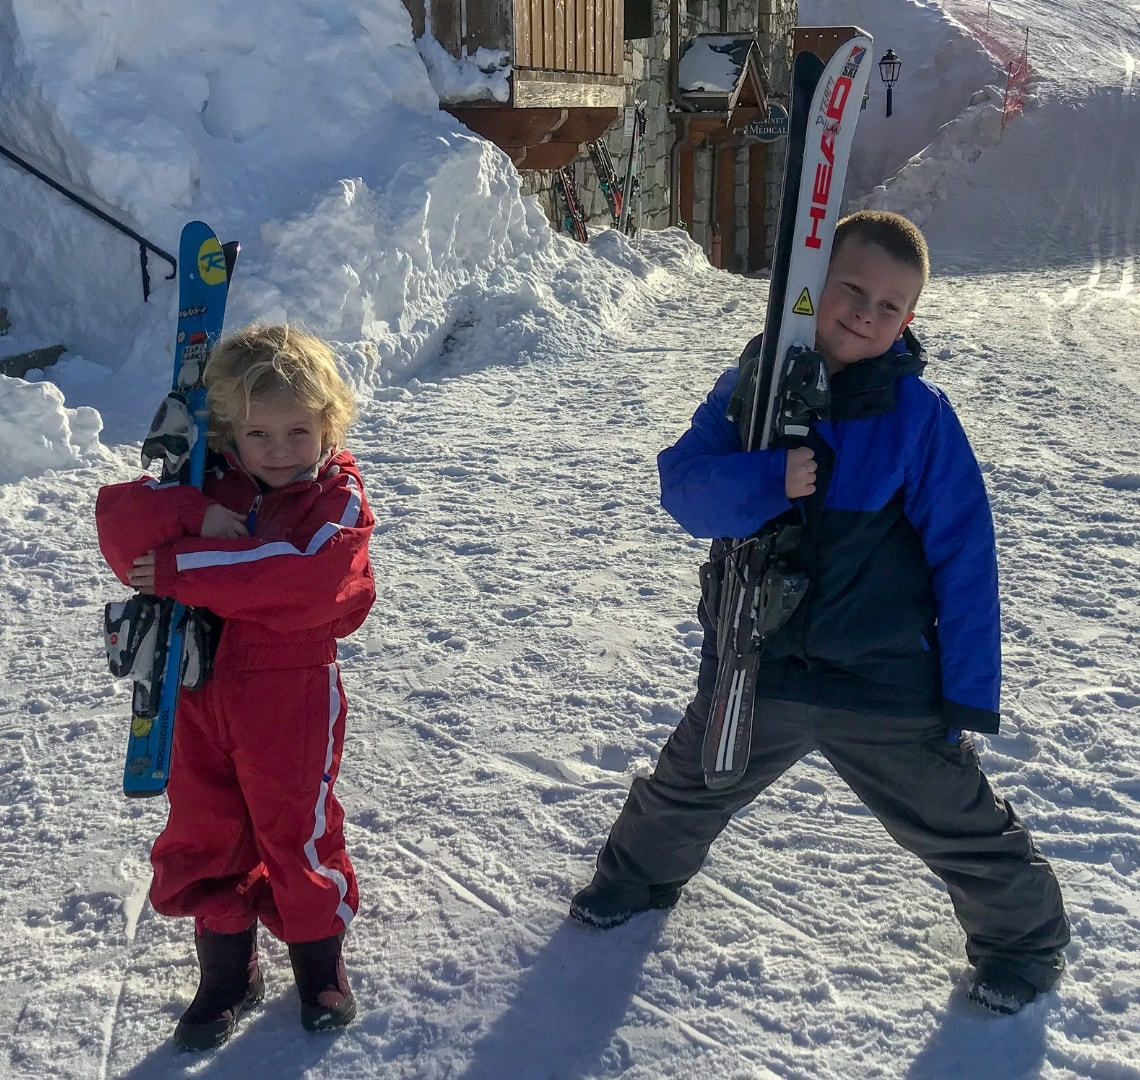 How to have an epic family holiday - the Things carrying skis